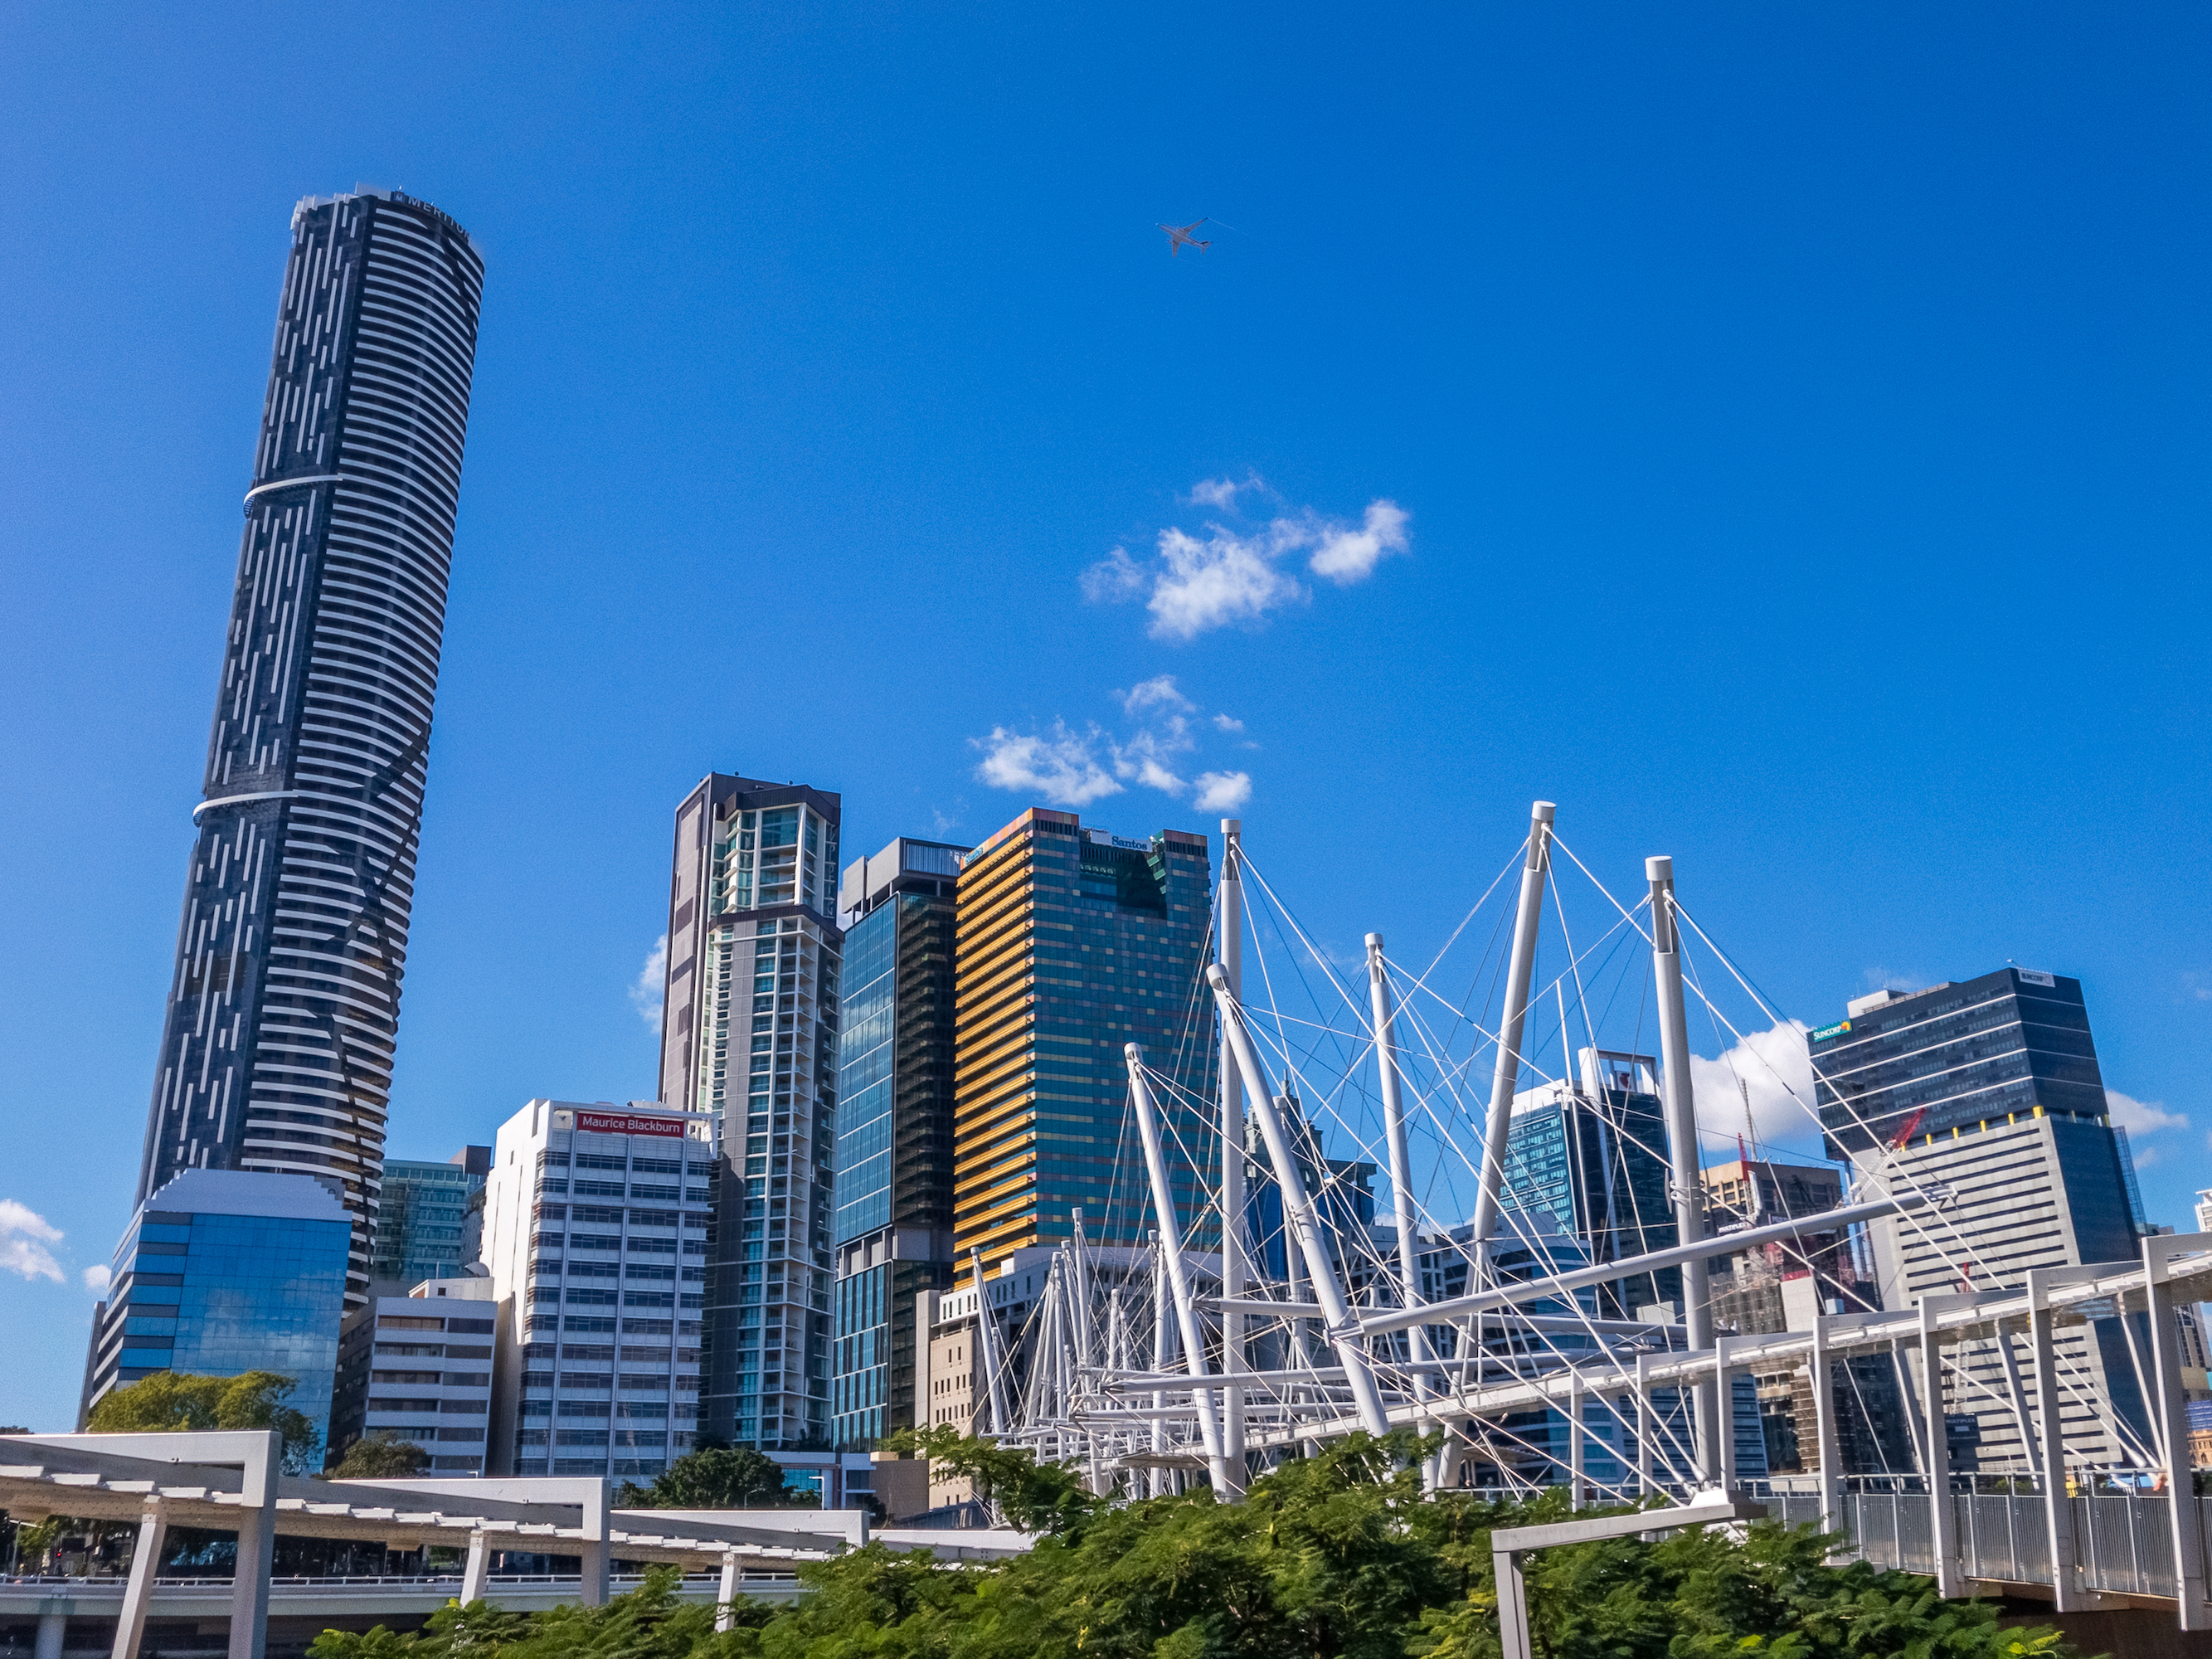 Brisbane's Photography Course for Beginners